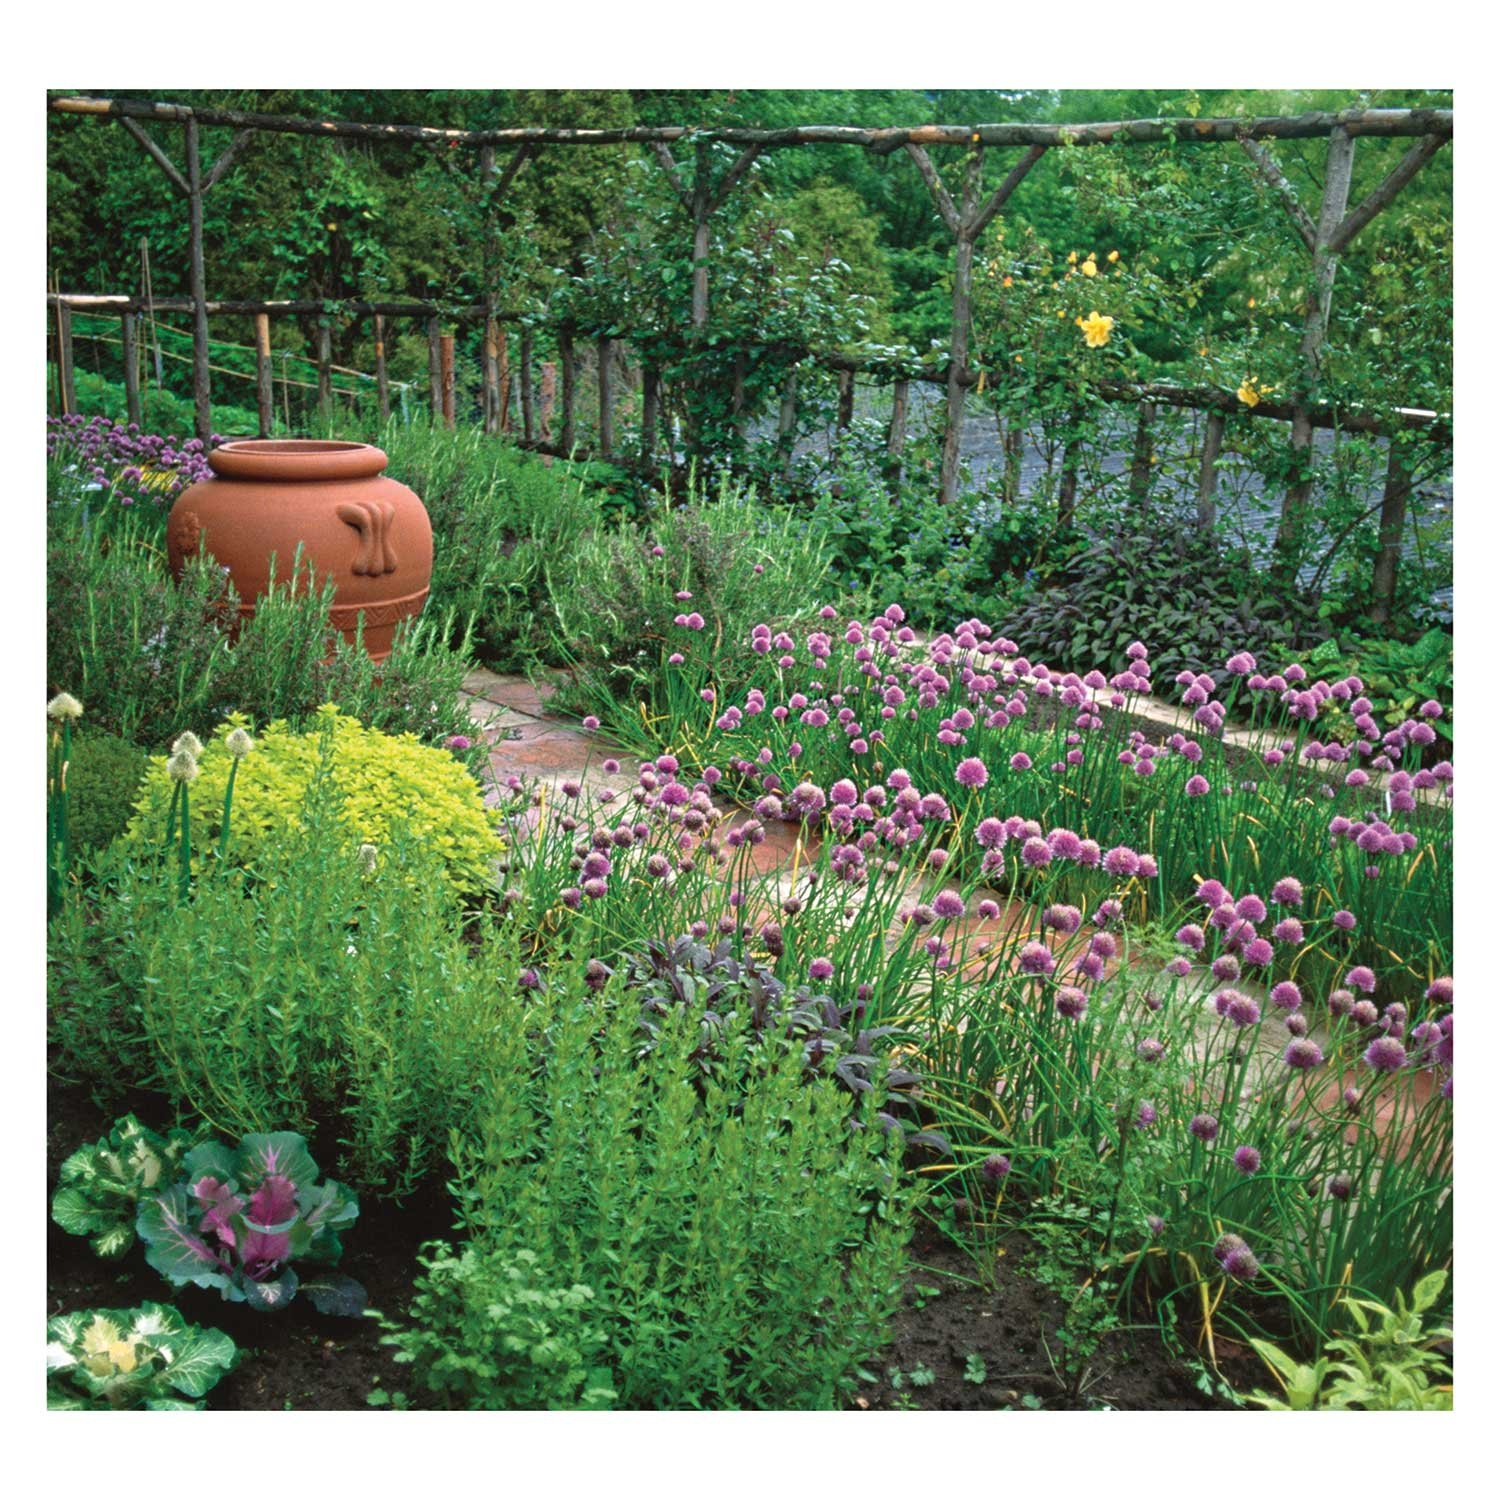 Herb Gardens 2018 Wall Calendar: Recipes & Herbal Folklore: Maggie Oster,  Amber Lotus Publishing: 9781631362767: Amazon.com: Books